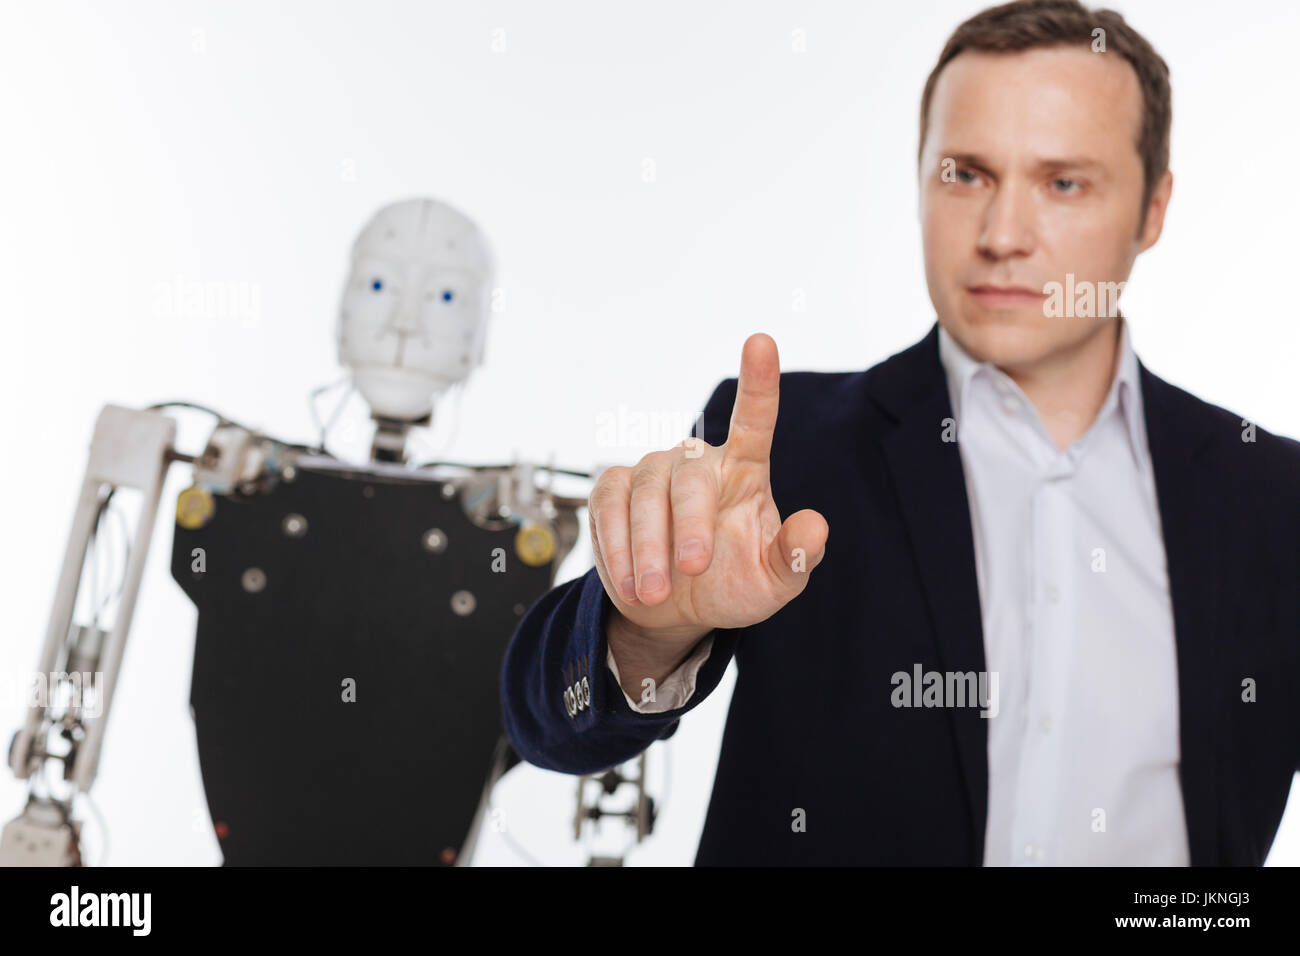 Serious handsome man tapping on a screen - Stock Image